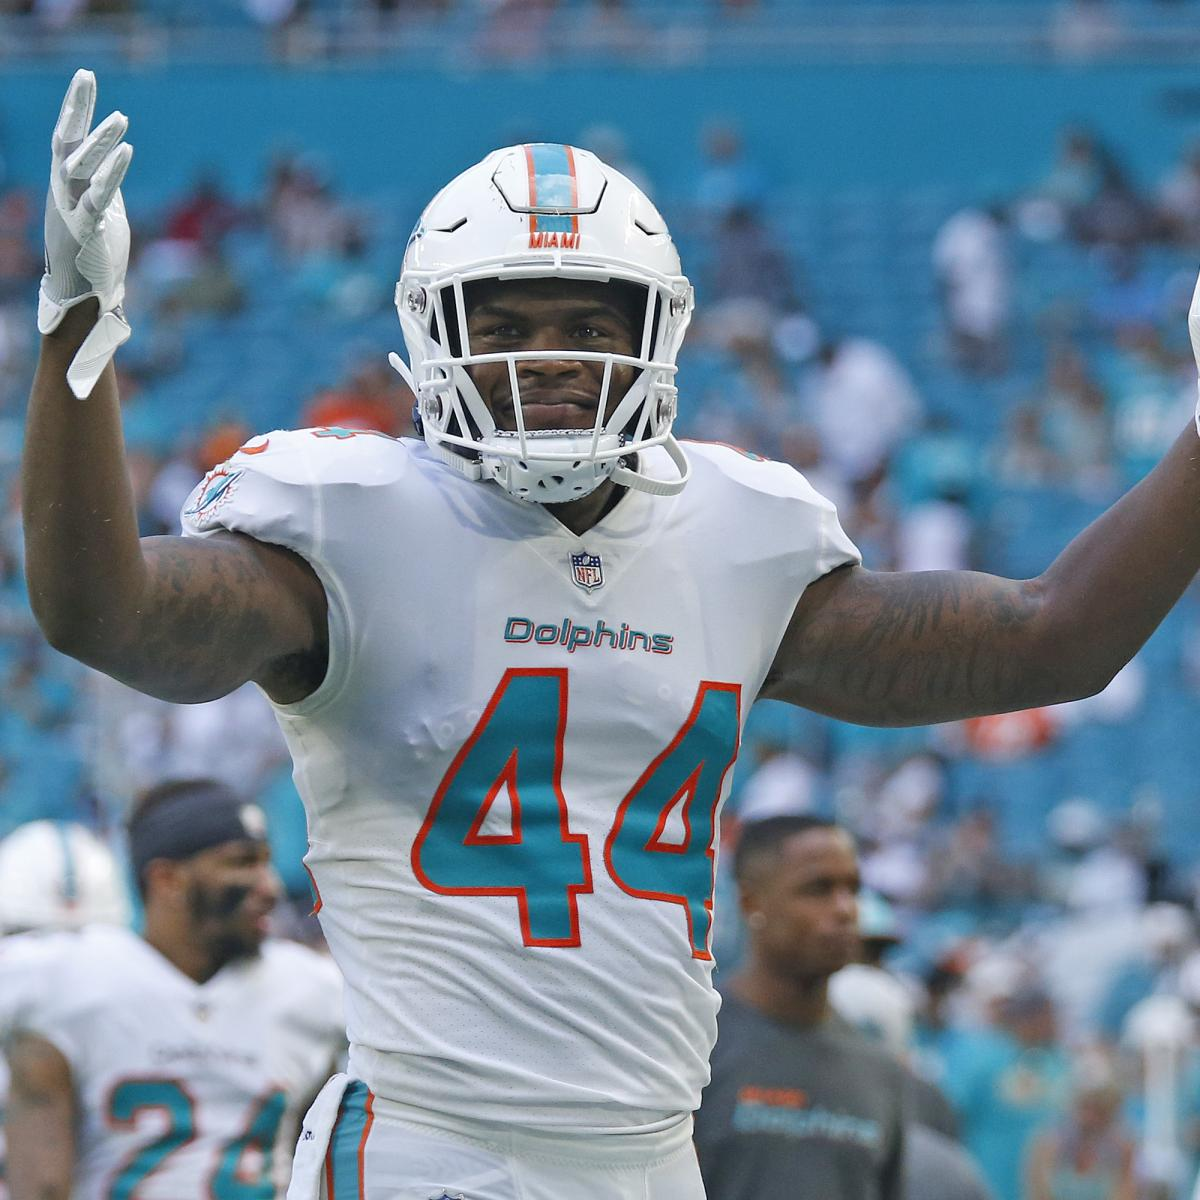 Jets Rumors: LB Stephone Anthony Agrees to Contract After 2 Years with Dolphins